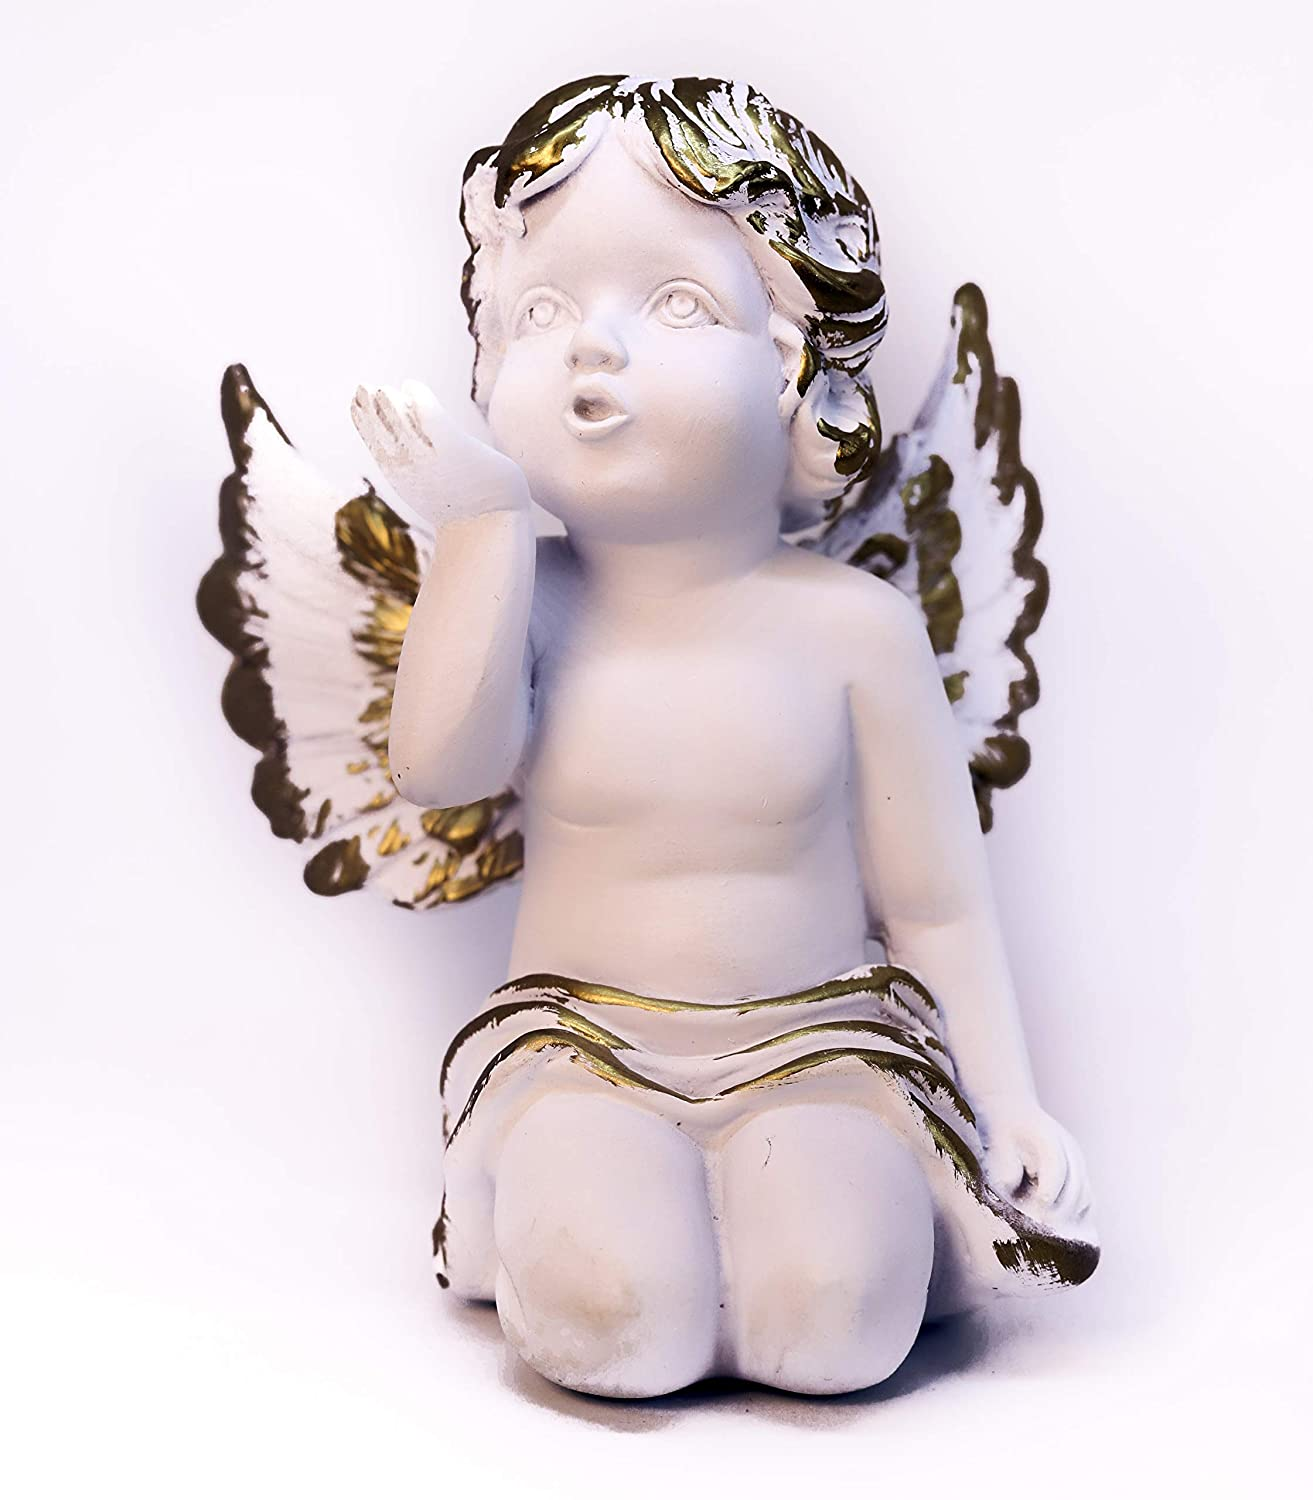 Angelo Sette - Miniature White Angel Statue - Baby Angel Sending The Air Kiss - Inspired by Classic Italian Statues - Decorative Indoor Gift for Home – Perfect Art Gift for Anyone